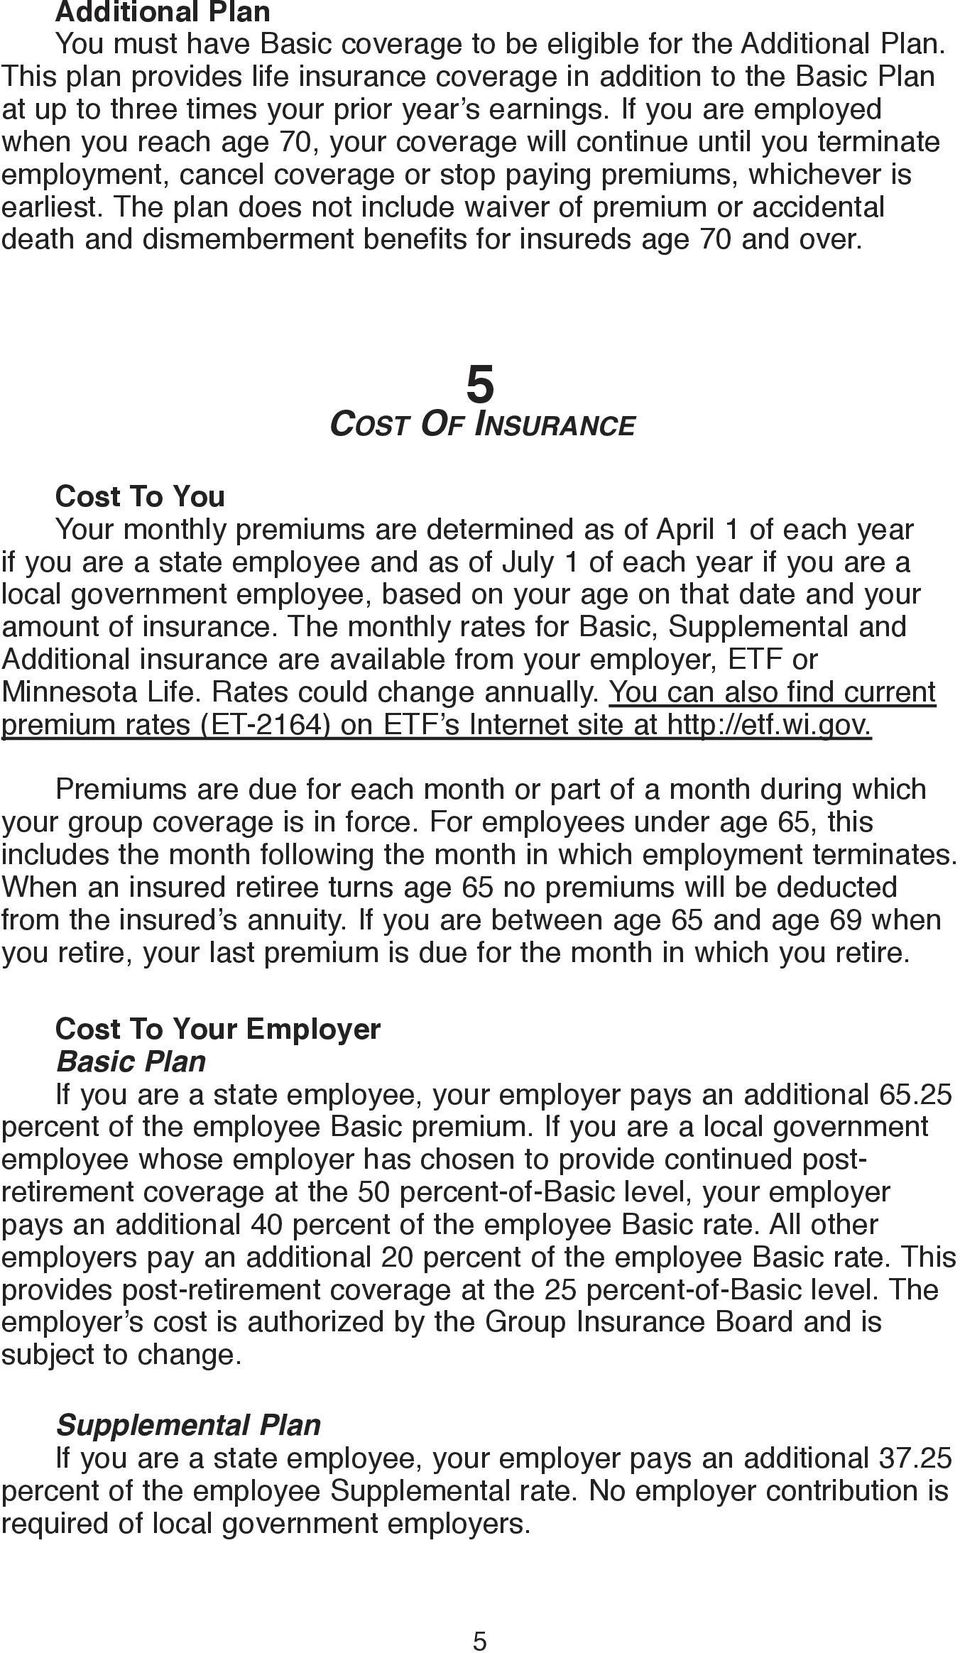 If you are employed when you reach age 70, your coverage will continue until you terminate employment, cancel coverage or stop paying premiums, whichever is earliest.